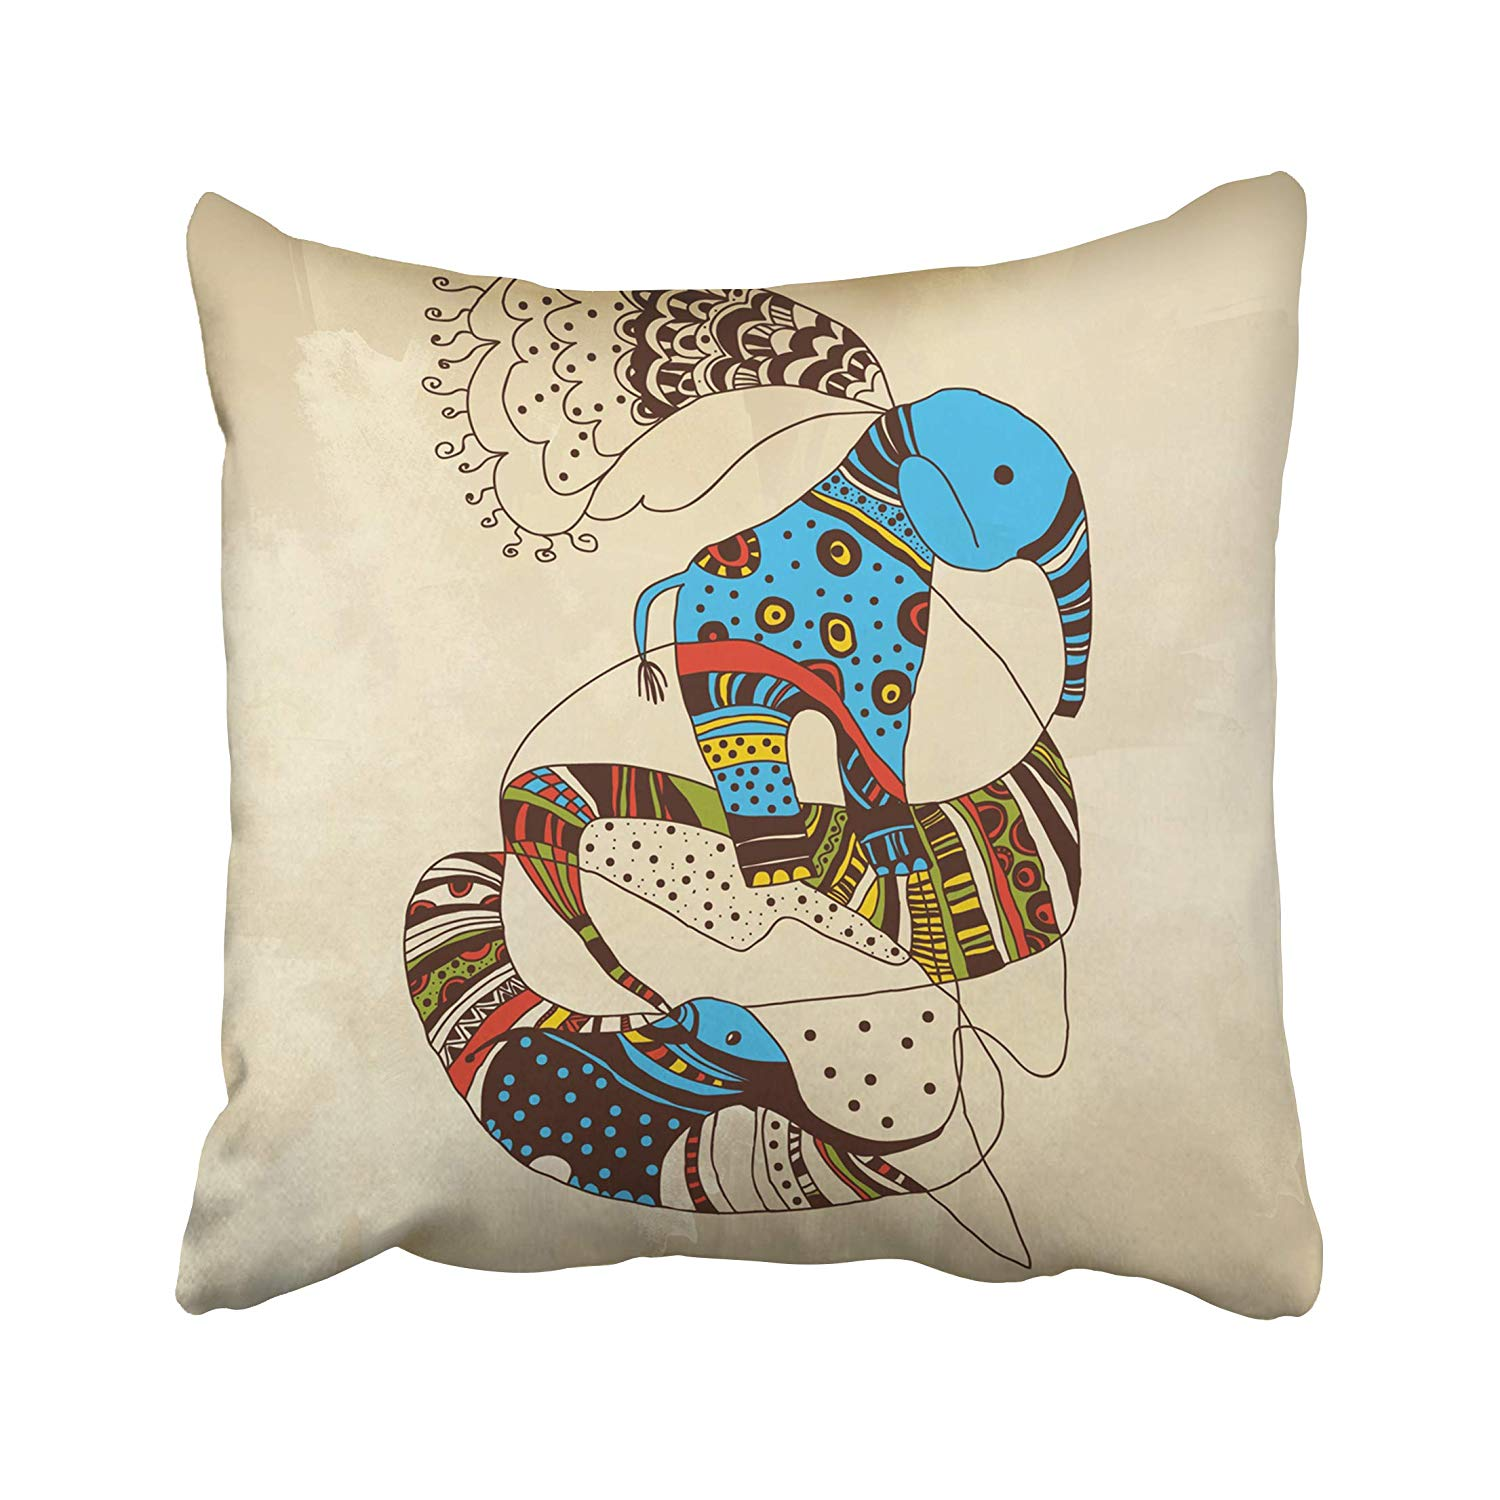 USART Beige Sweet Dreams Come True Blue Cartoon Elephant Kids Pastel Sketch Vintage Pillow Case Pillow Cover 18x18 inch Throw Pillow Covers